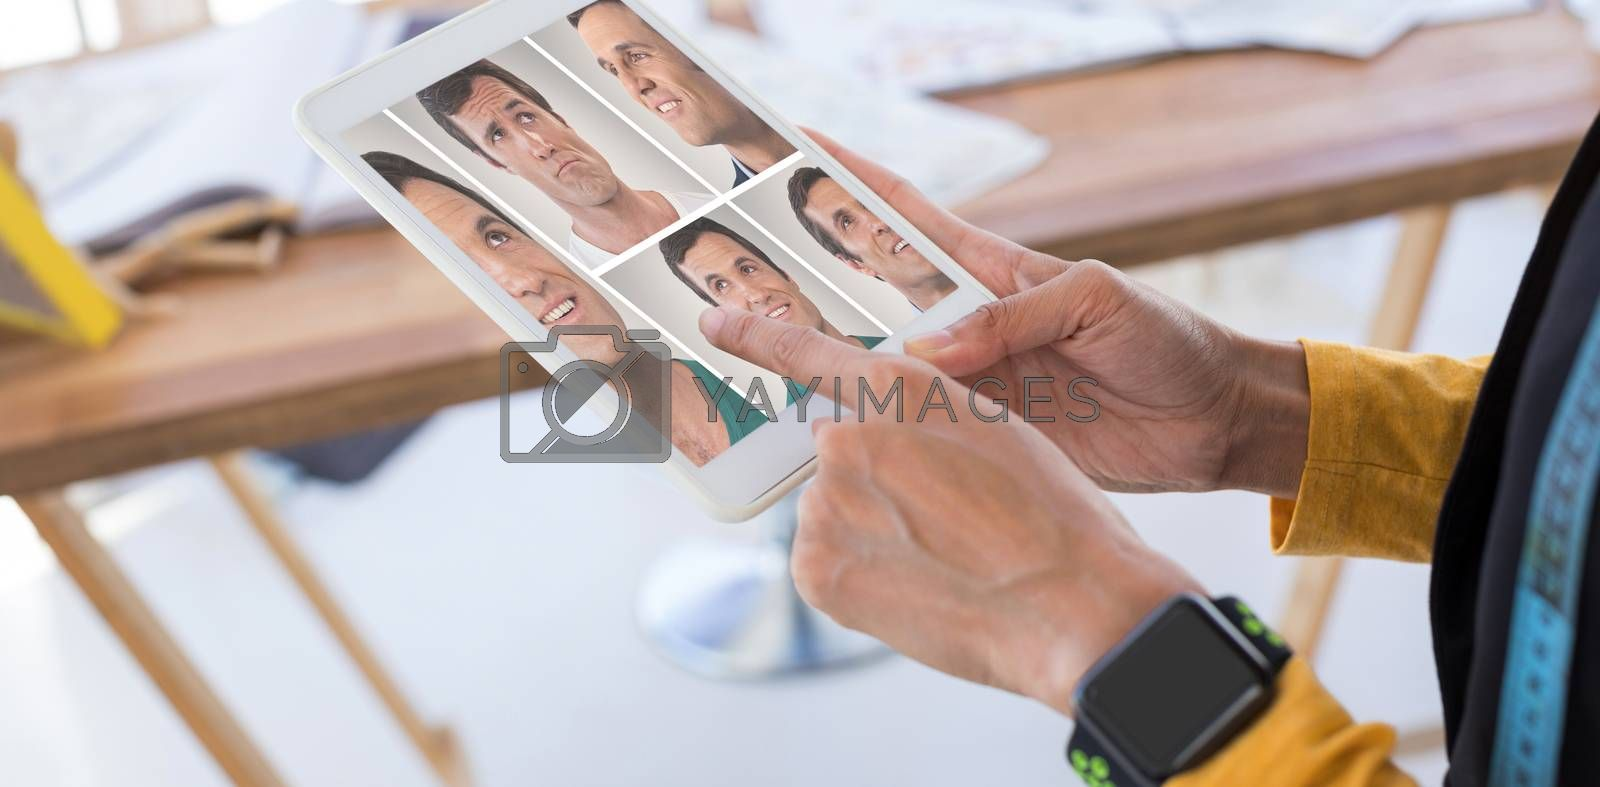 People collage portrait single 5 against fashion designer using digital tablet in office